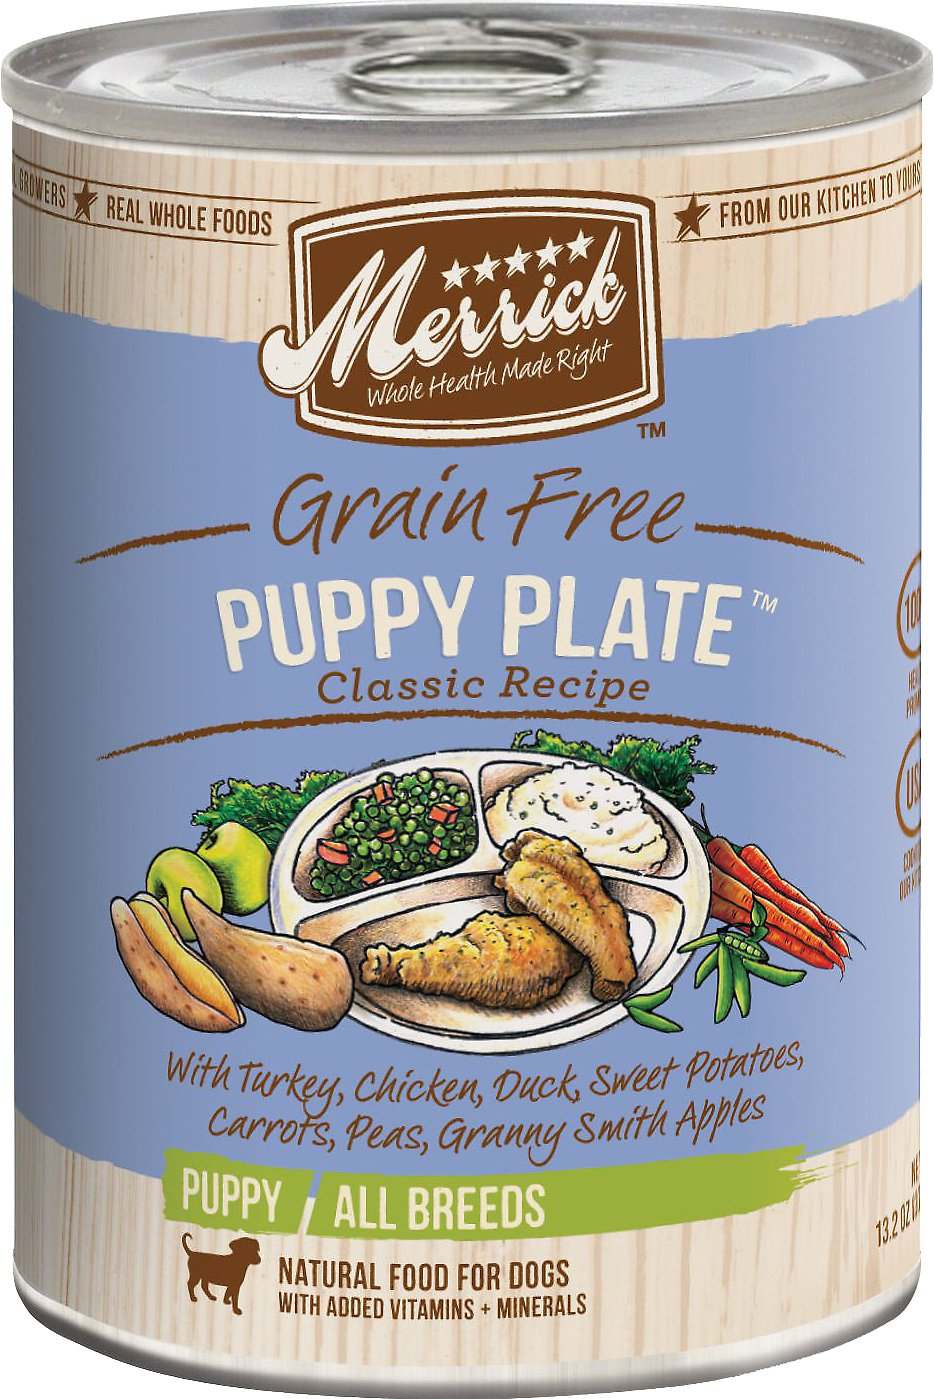 Merrick Grain-Free Puppy Plate Recipe Canned Dog Food Image